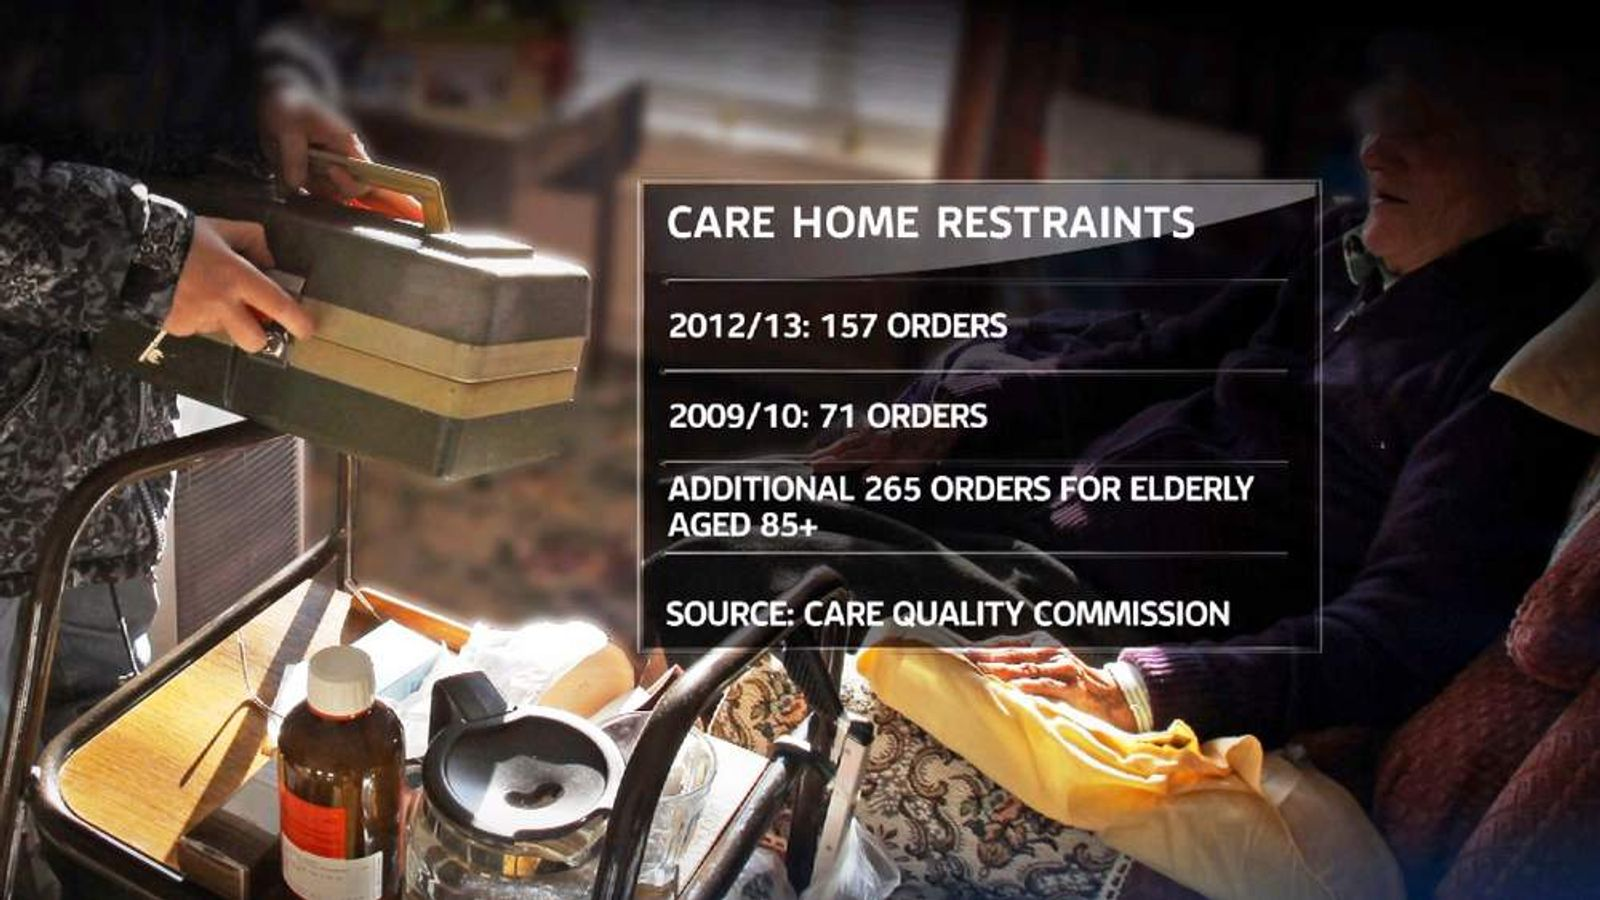 Statistics of orders for care home restraints